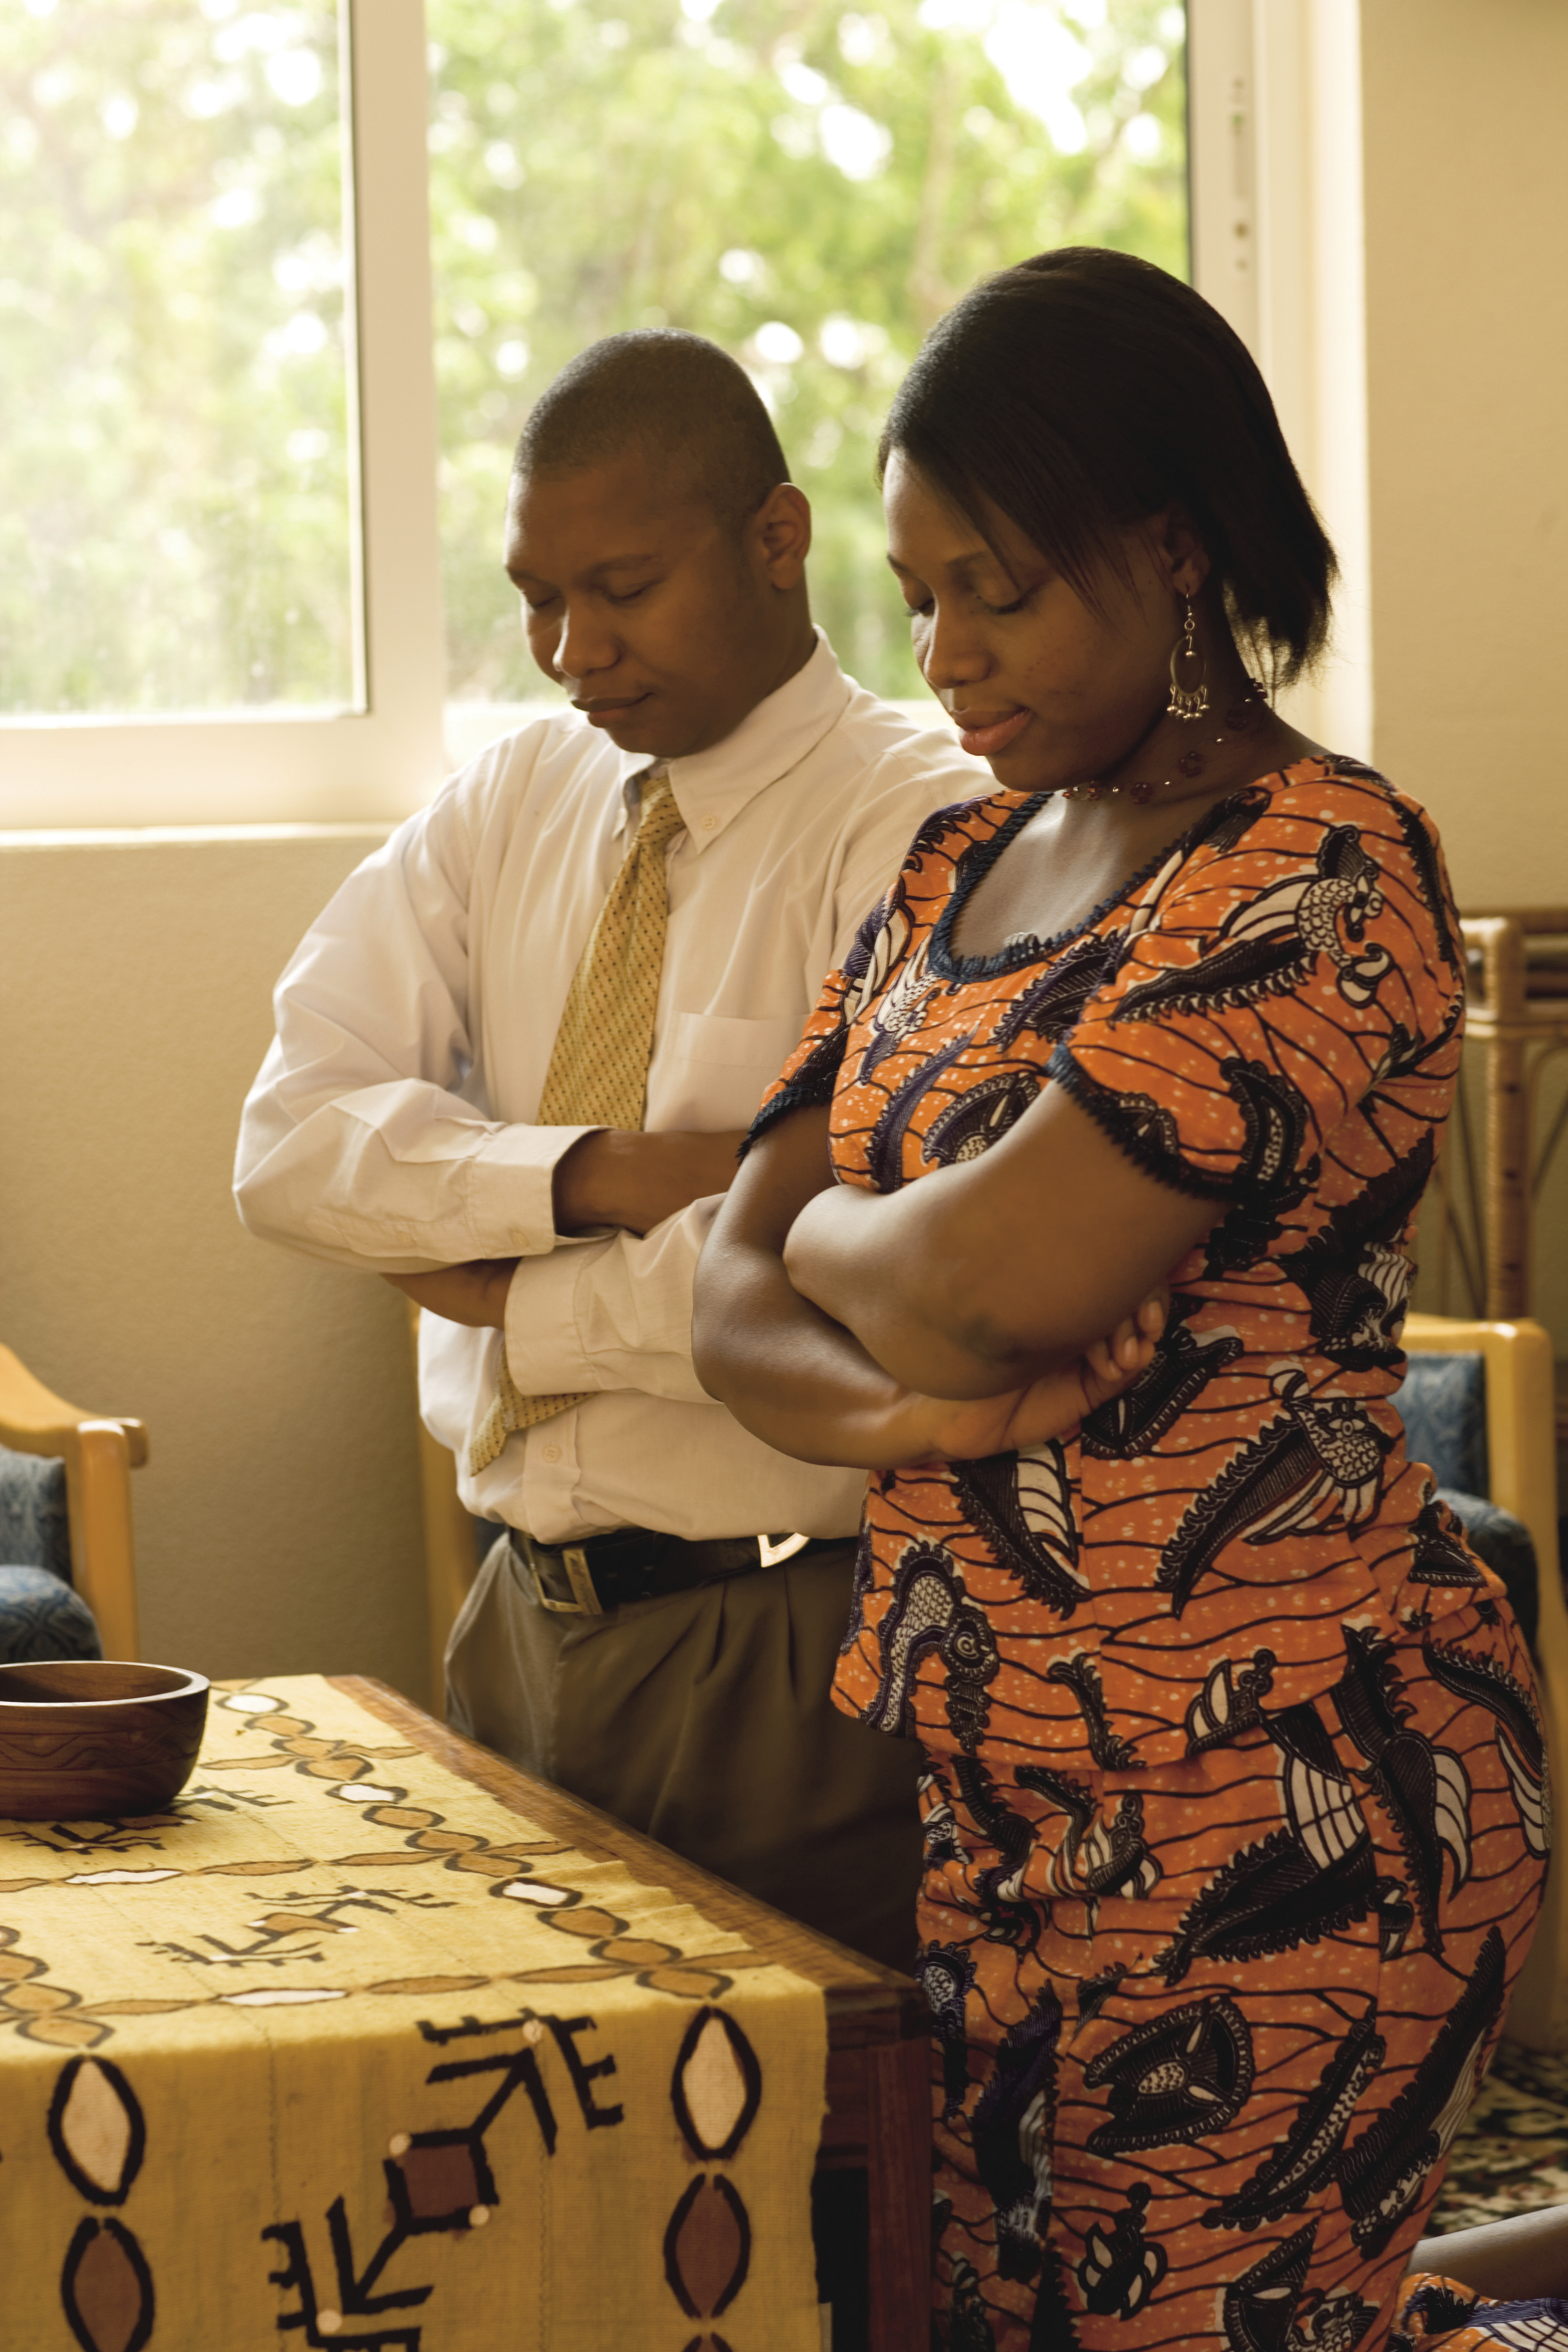 A husband and wife from Ghana kneeling in prayer together.